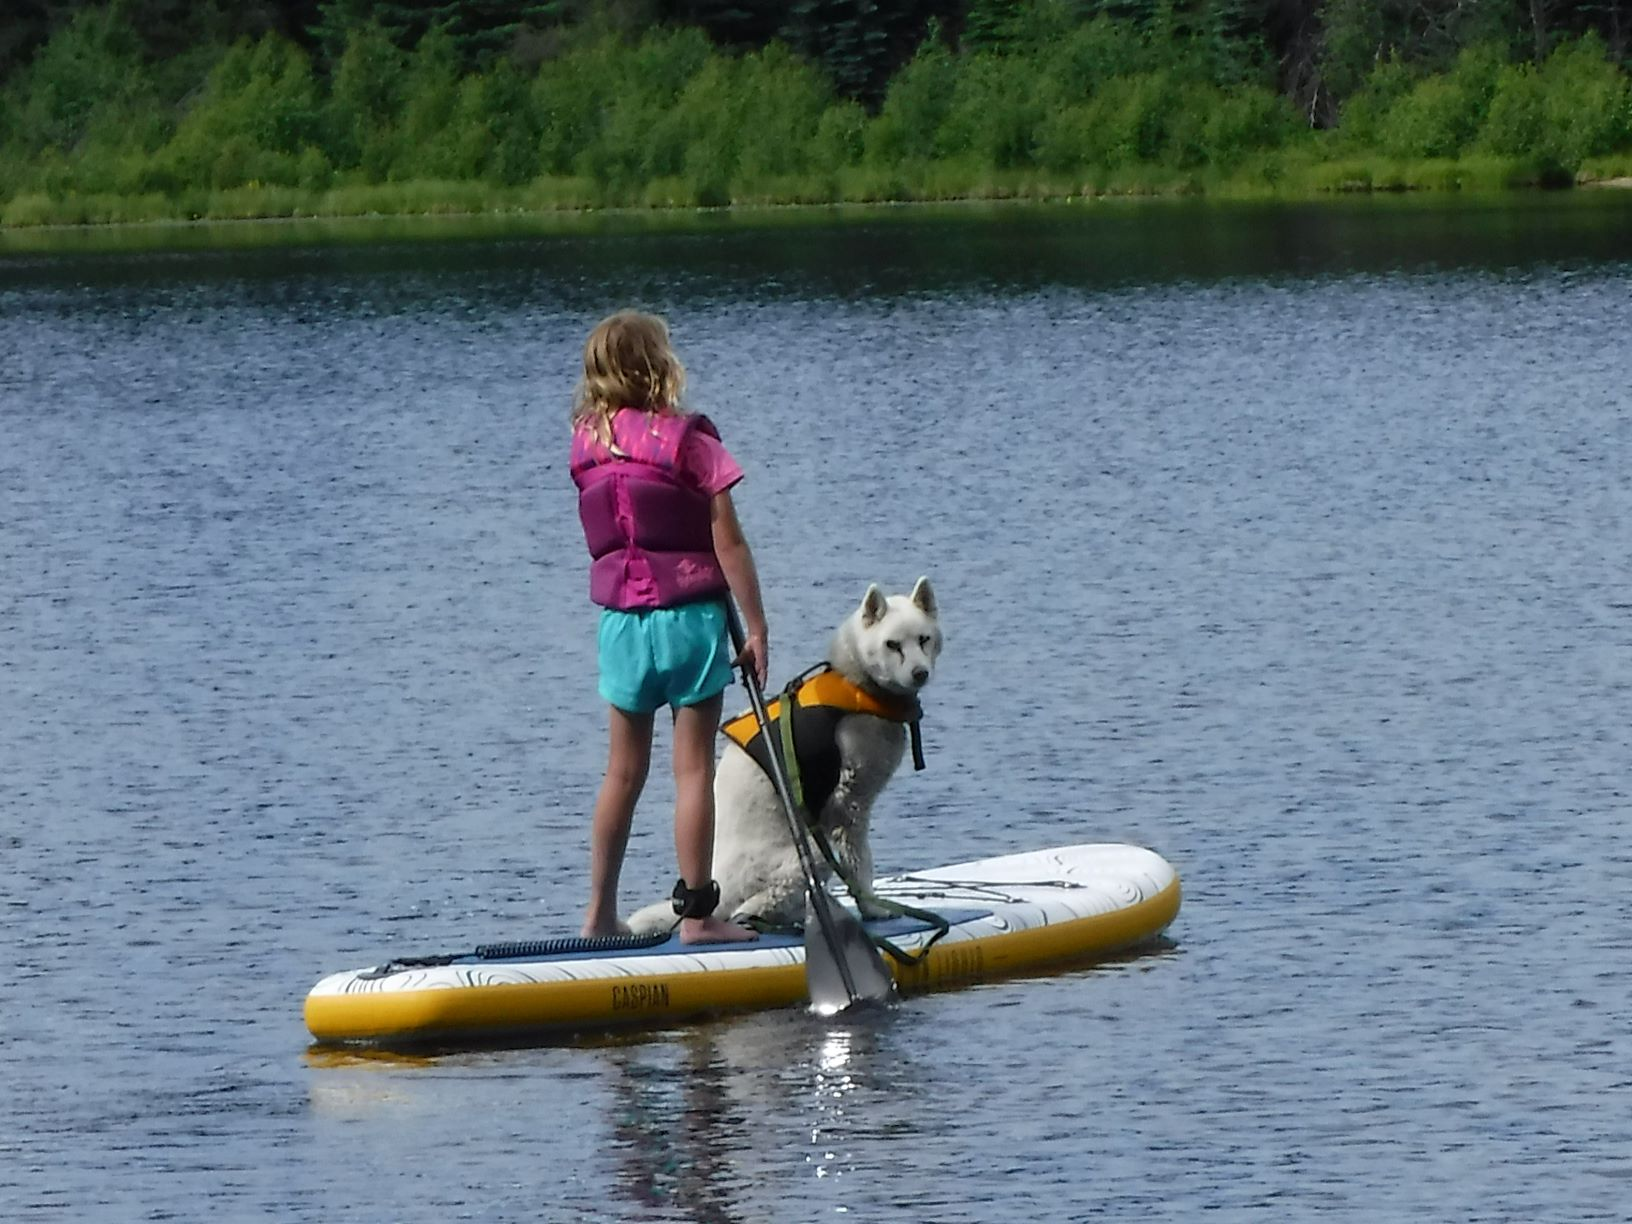 A little girl paddle-boarding with her dog on a lake.